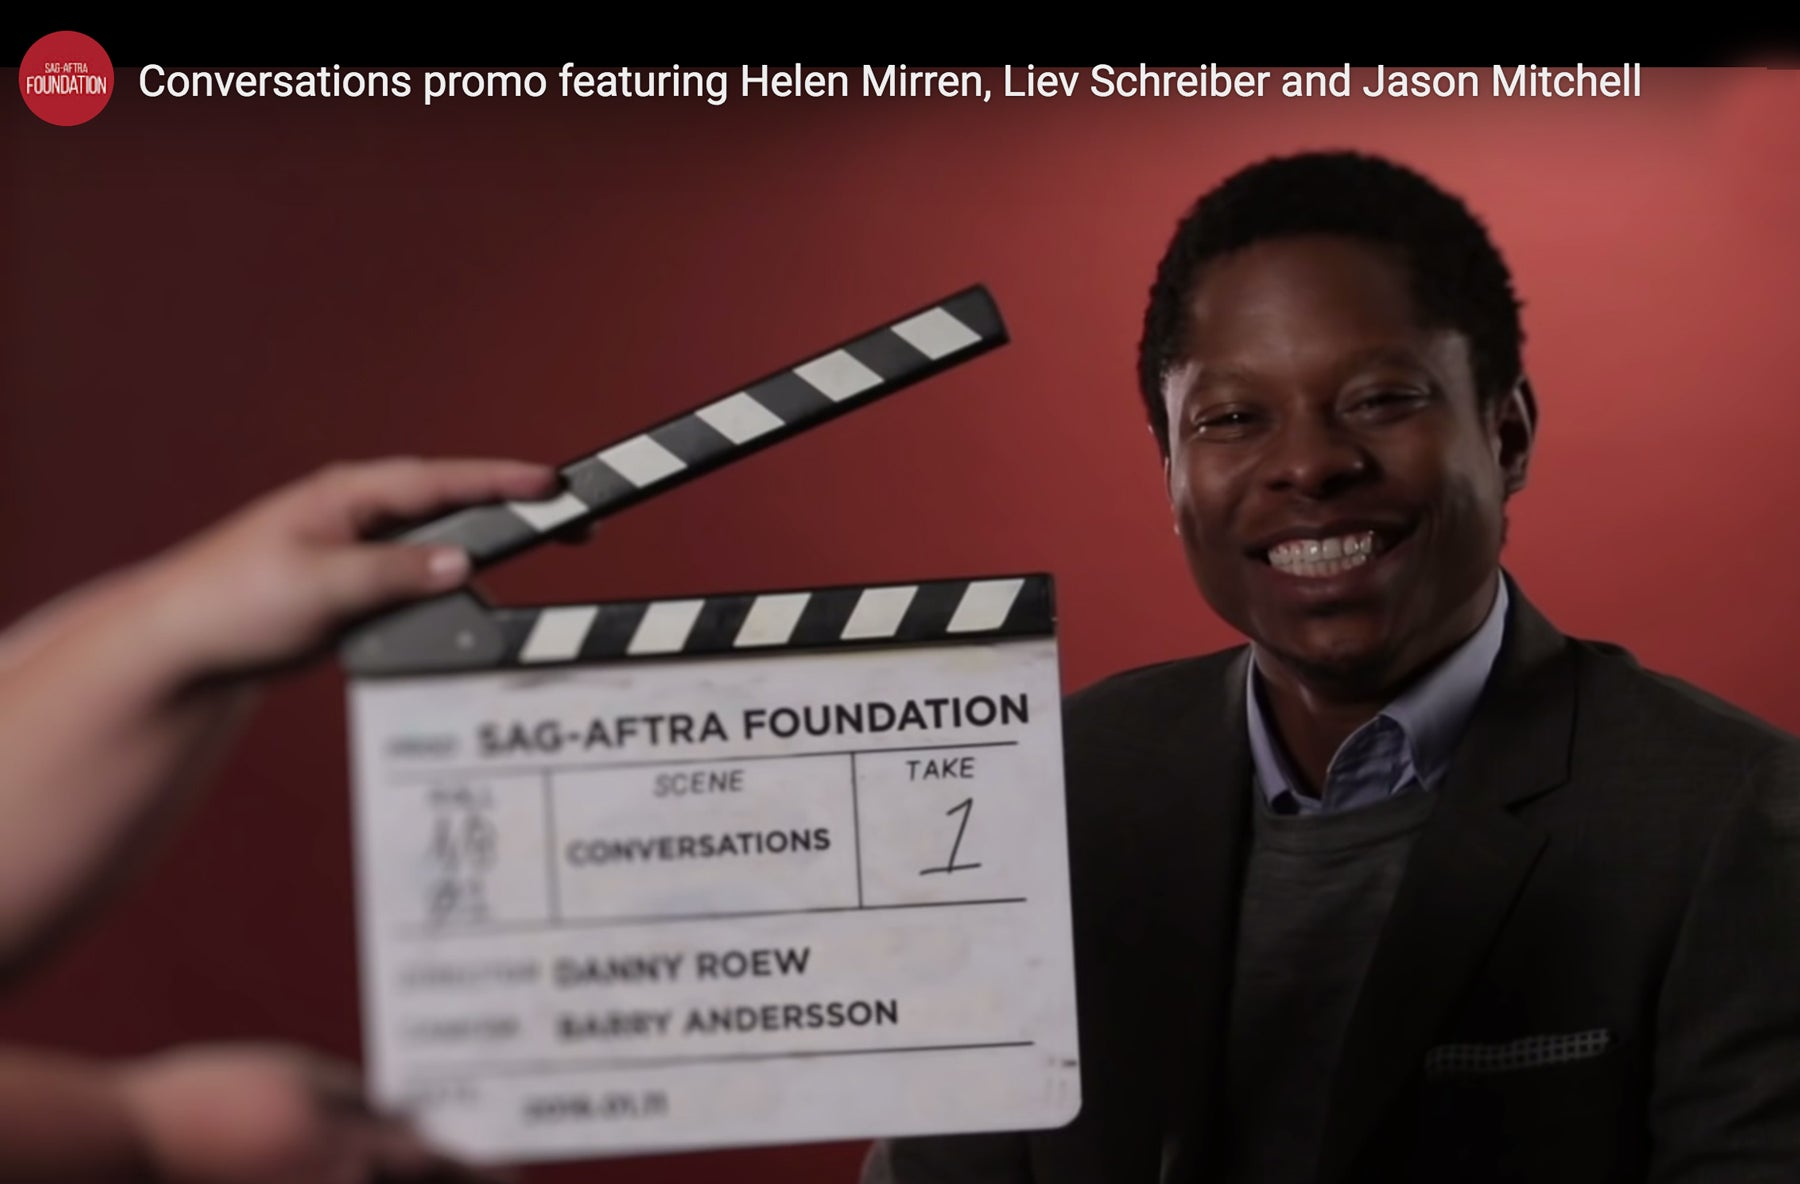 SAG-AFTRA Foundation Conversations